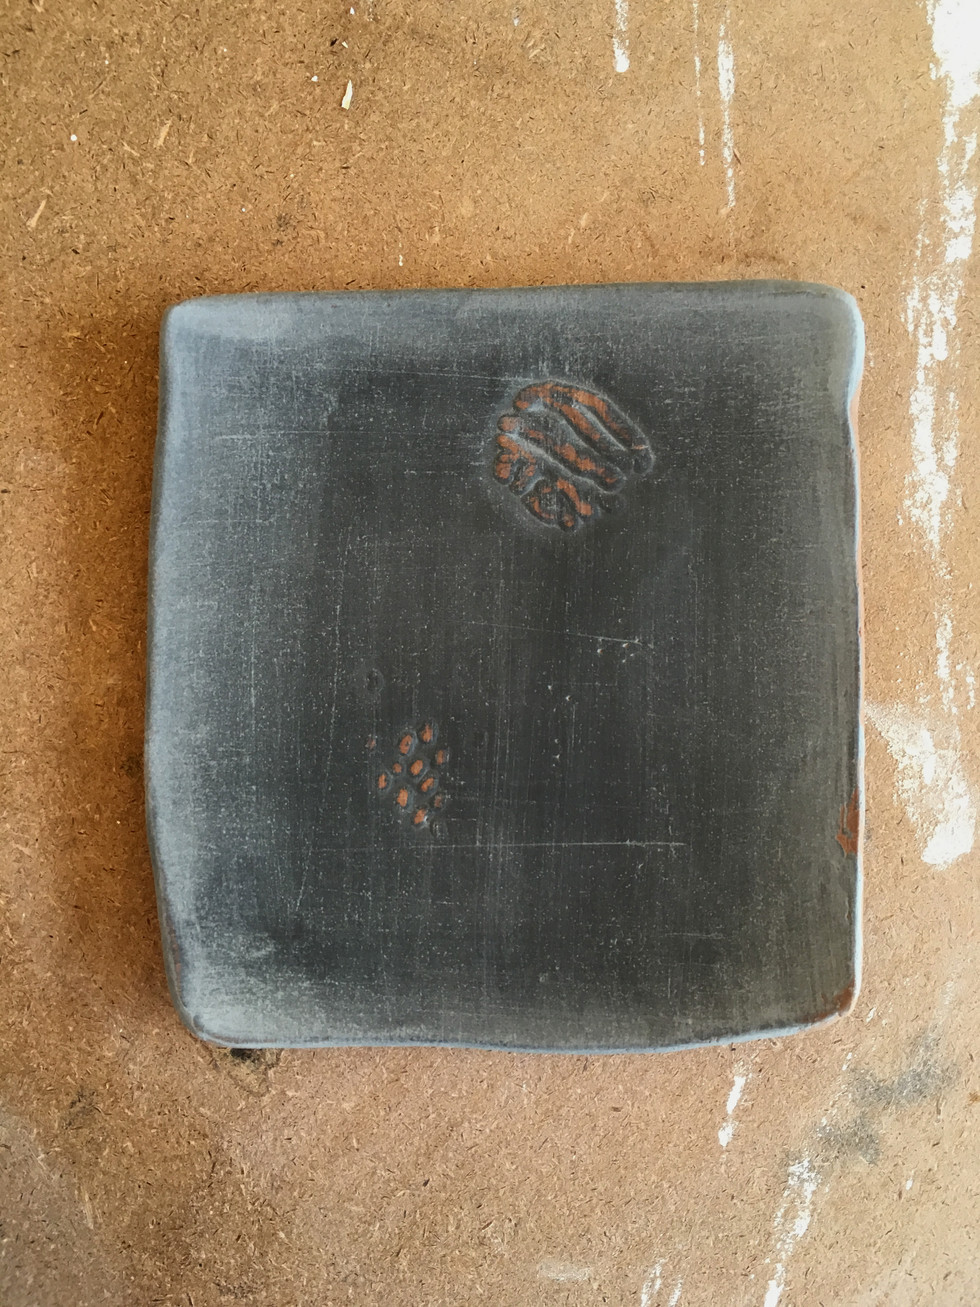 tania rollond_wip small black plate 2019